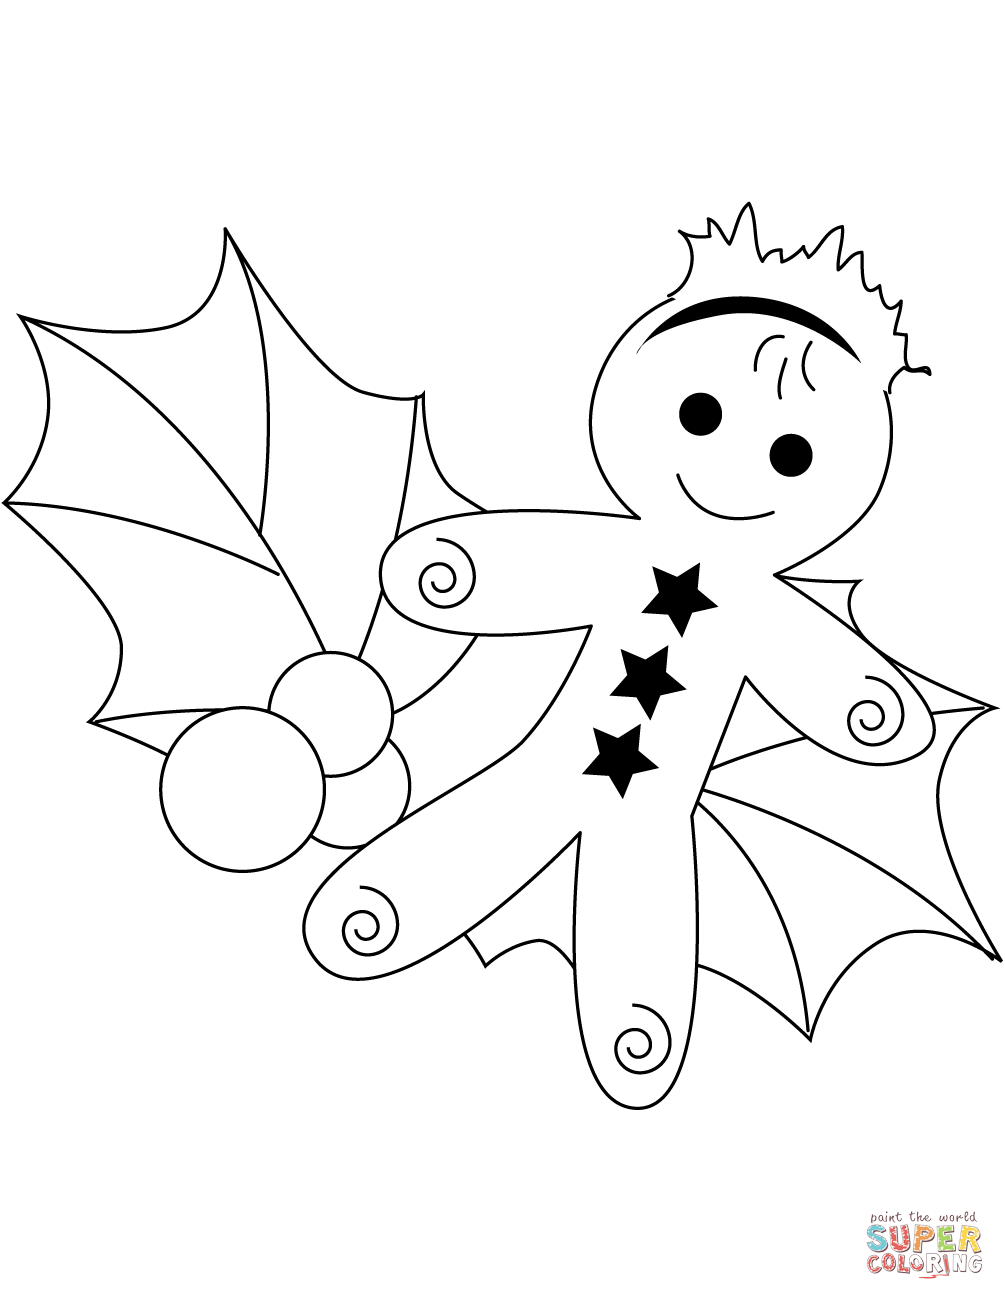 1005x1300 Christmas Gingerbread And Holly Leaf Coloring Page Free